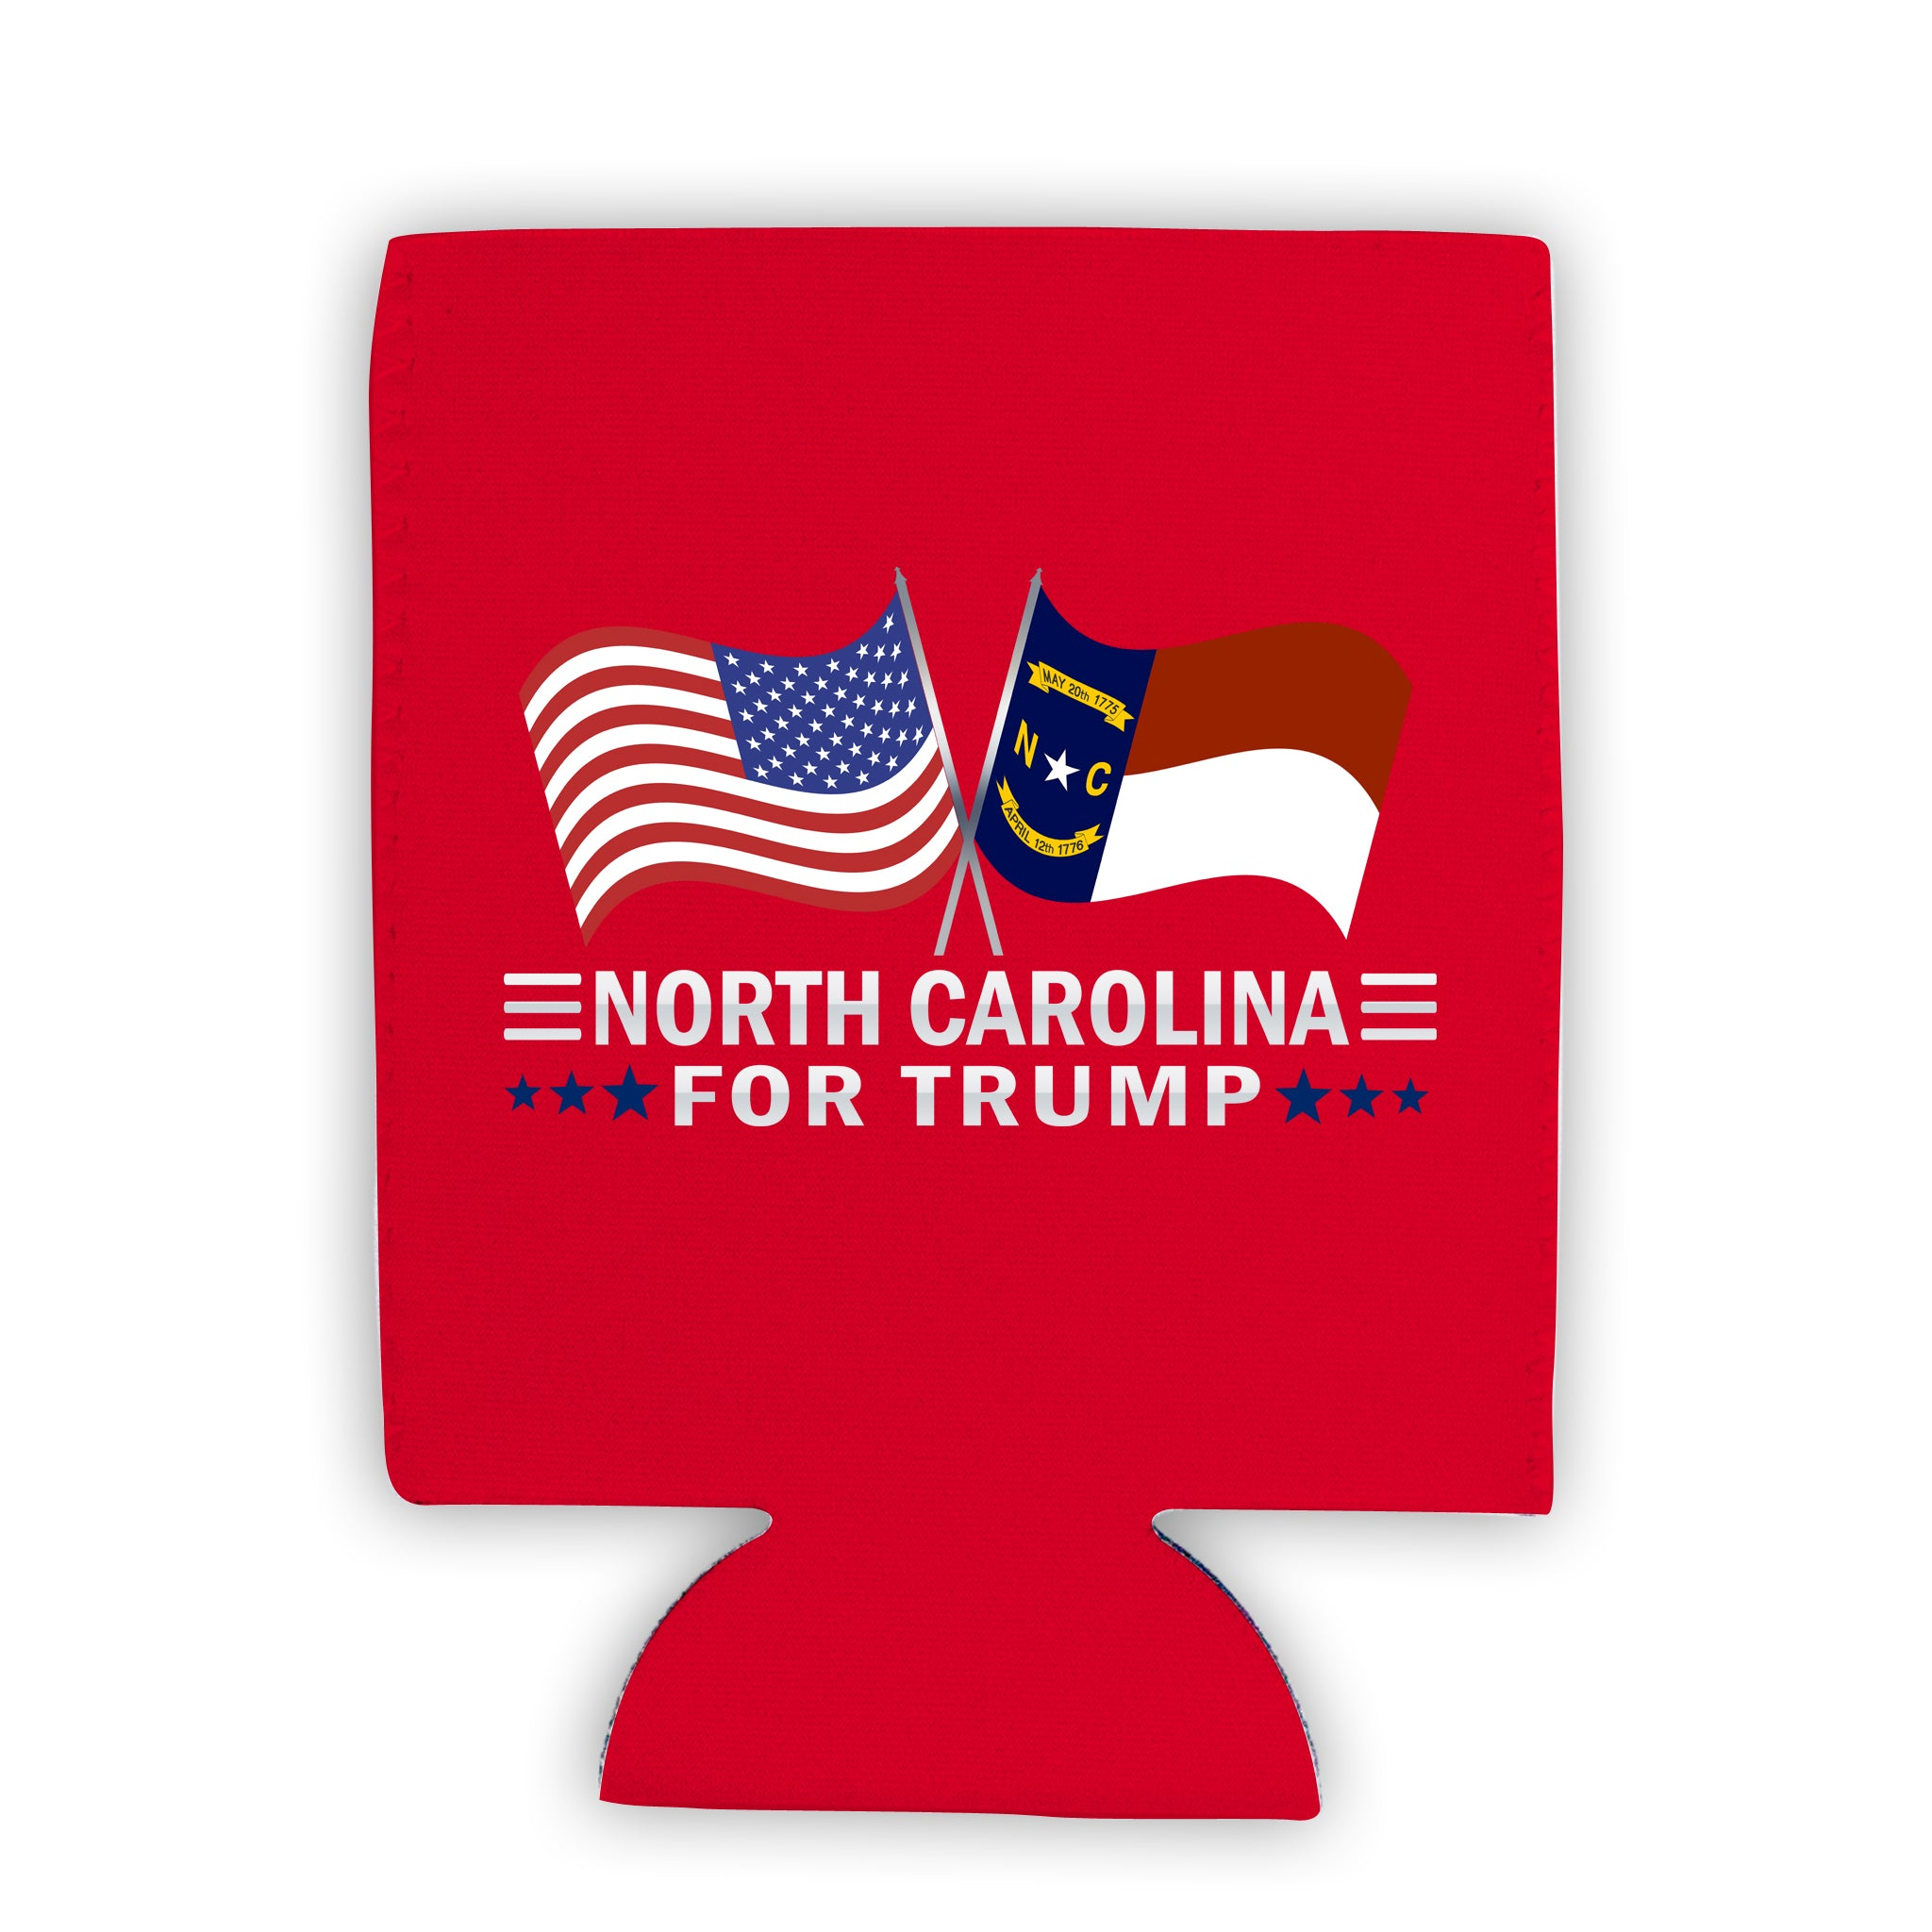 North Carolina For Trump Limited Edition Can Cooler